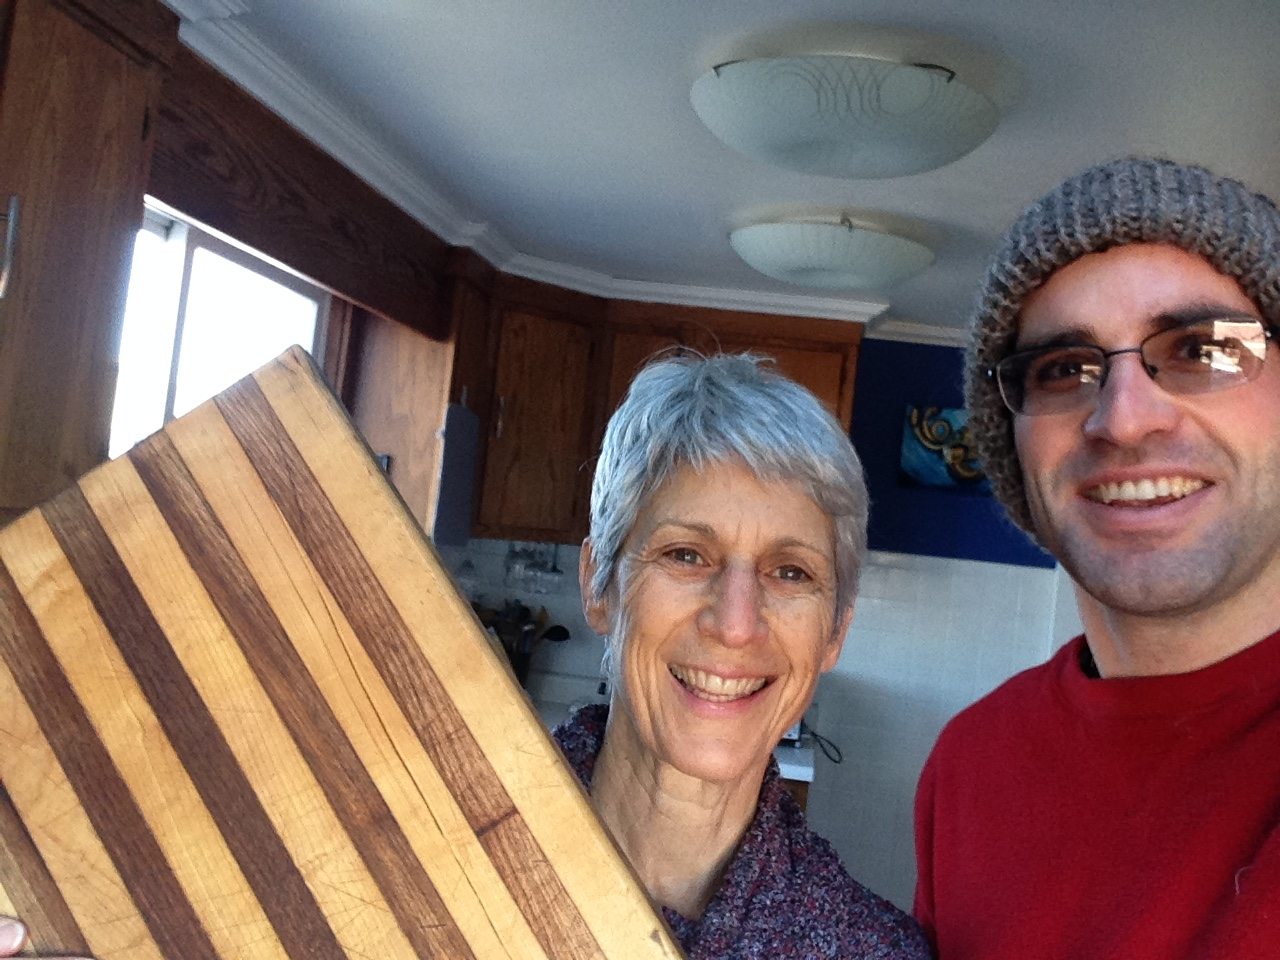 Repairing A Cutting Board For A Hand Knitted Hat